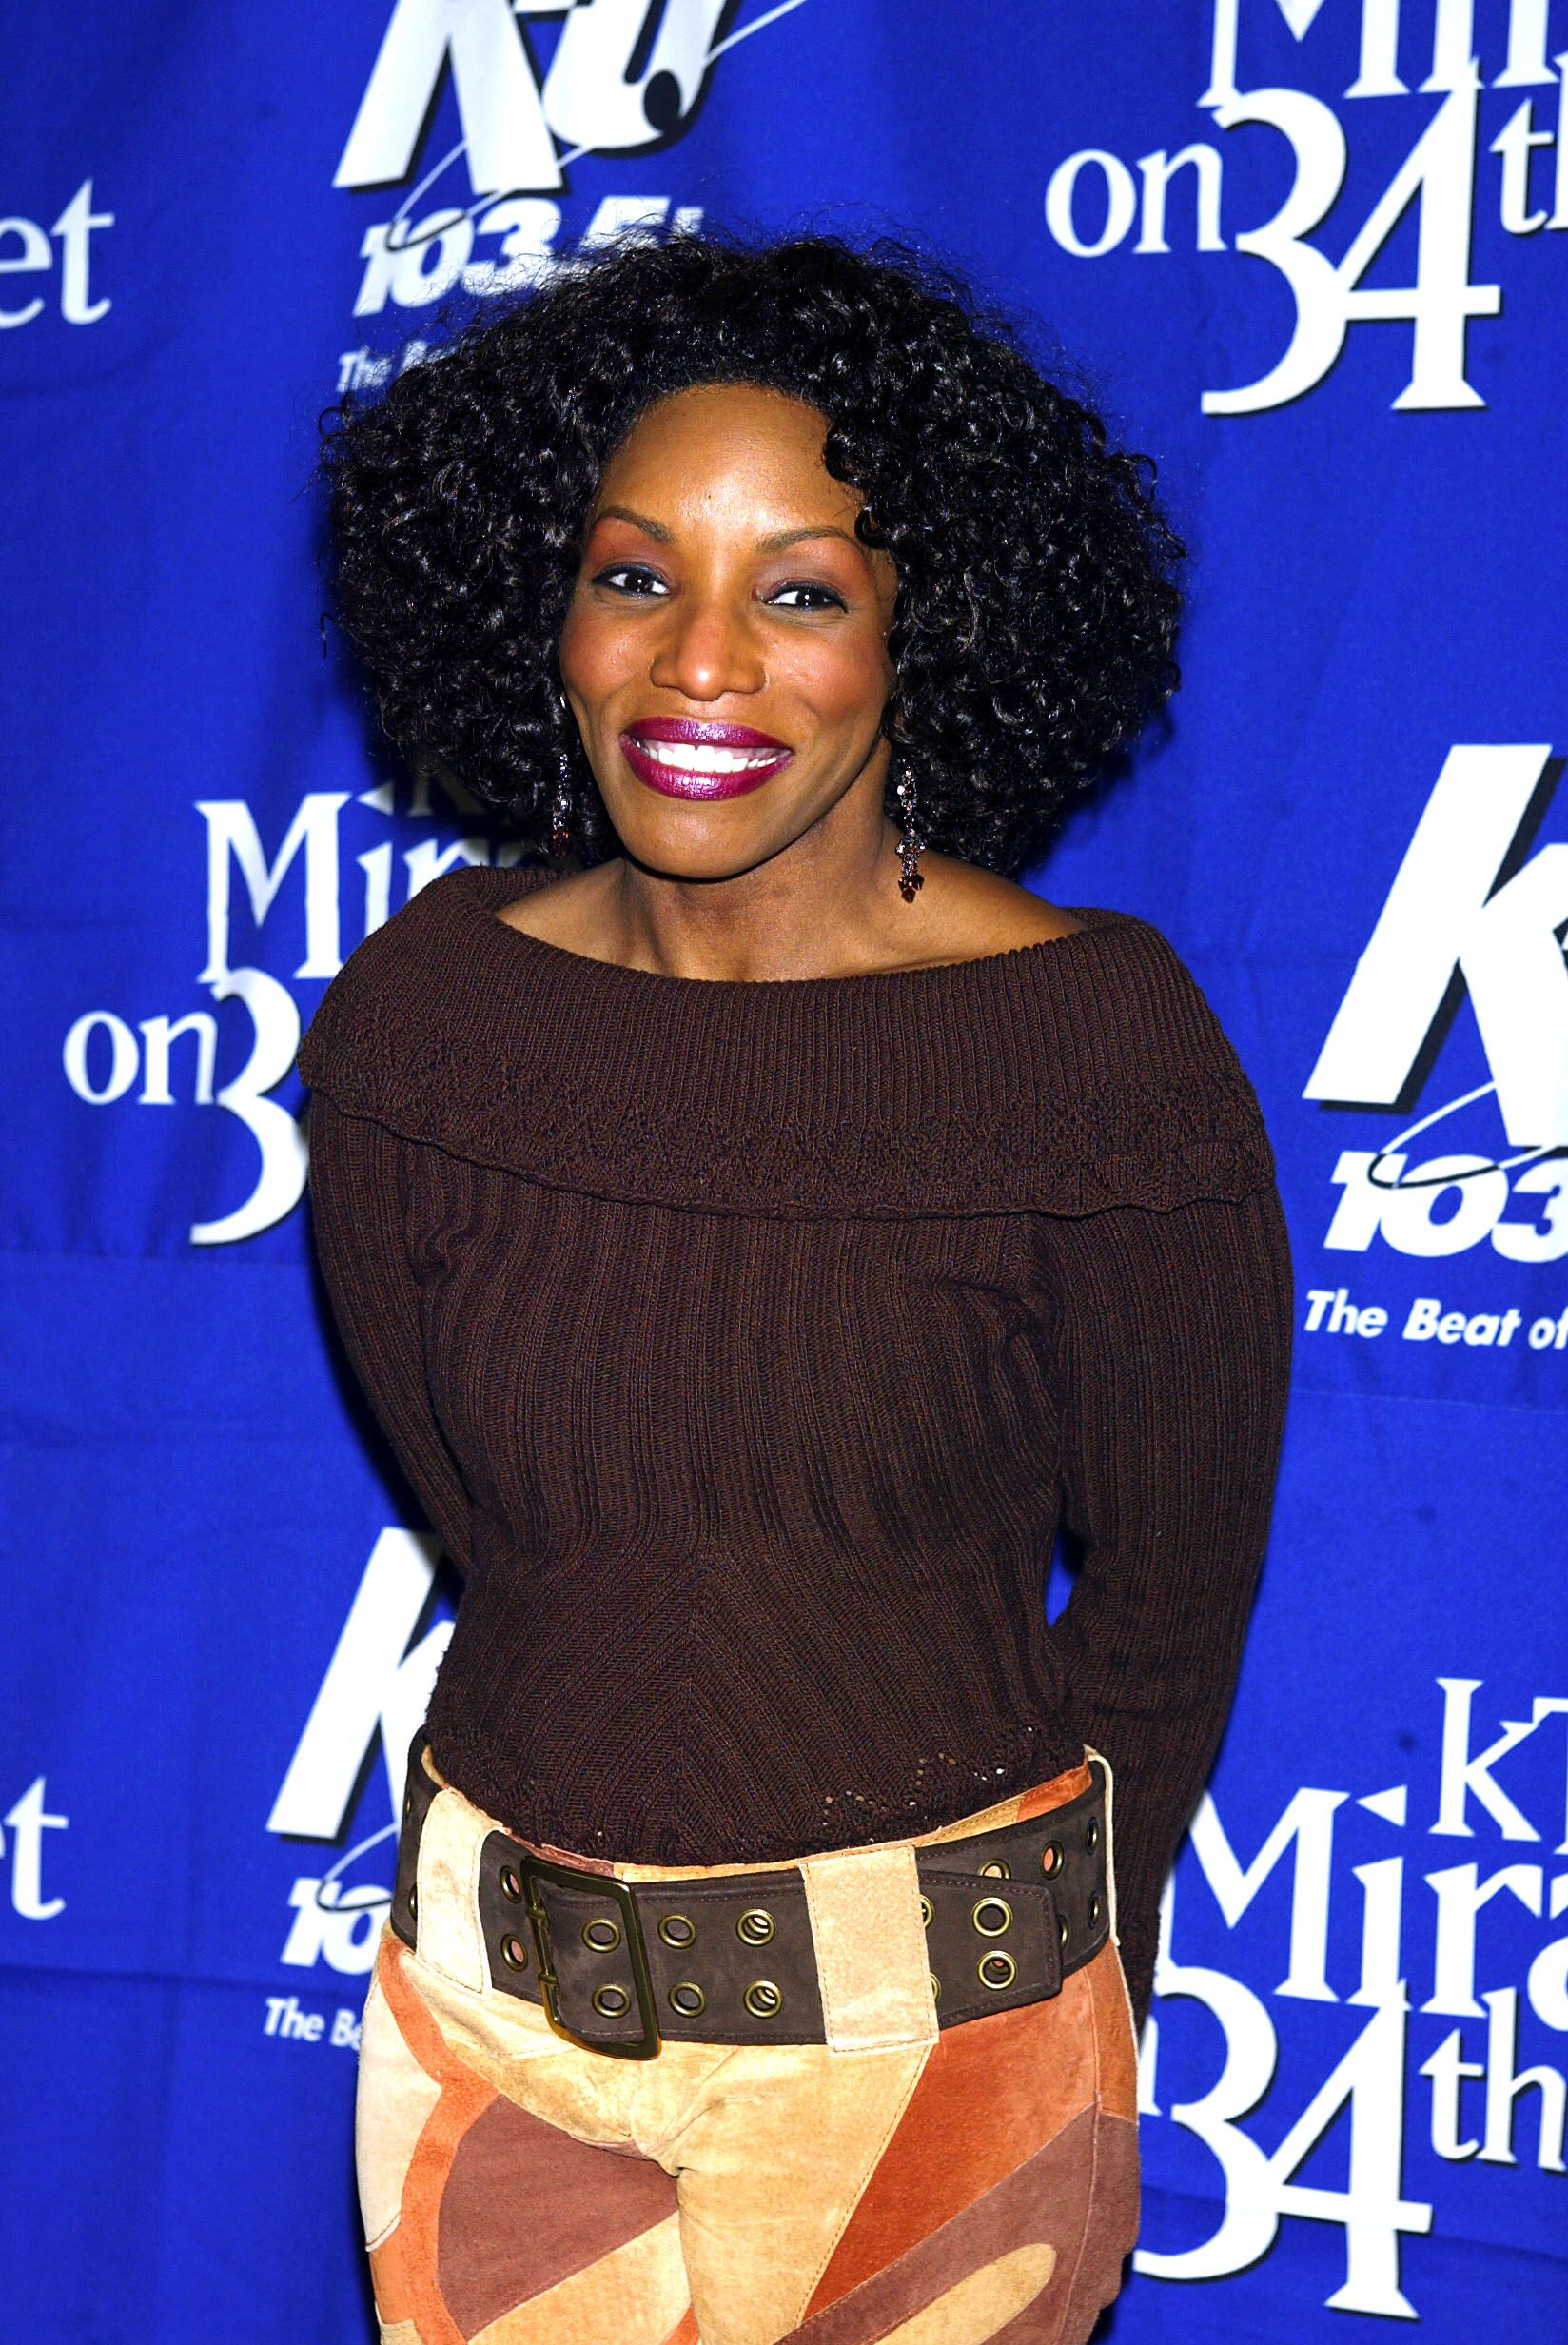 """Stephanie Mills backstage during """"KTU's Miracle on 34th Street"""" hoilday concert on December 18, 2002. 